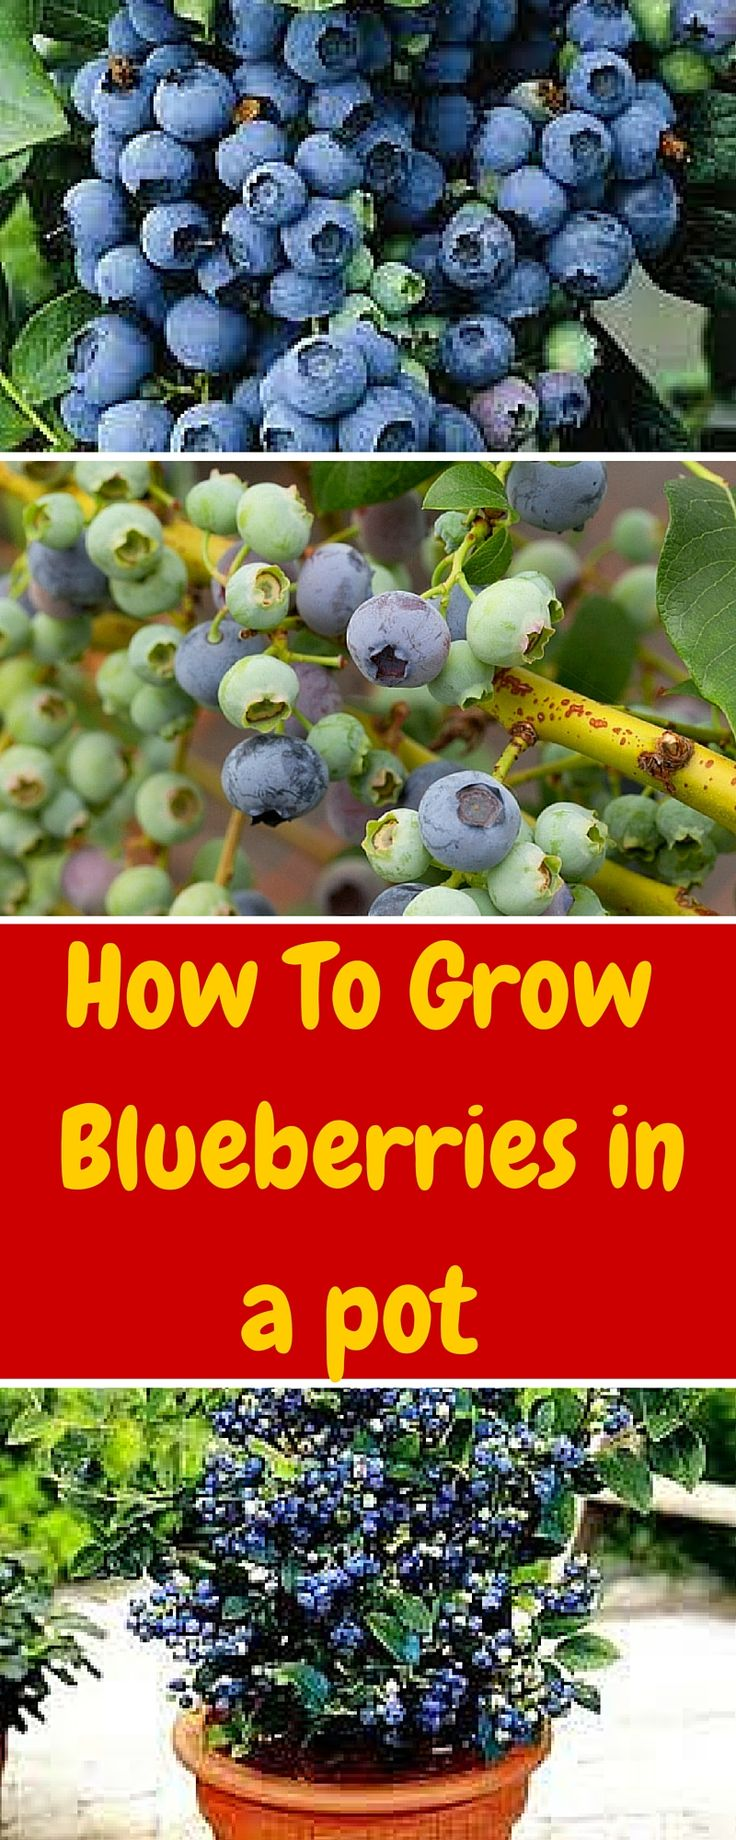 Blueberries is consider to be the healthiest fruit because it consists of larger quantity of antioxidants than the other fruits, fibers and